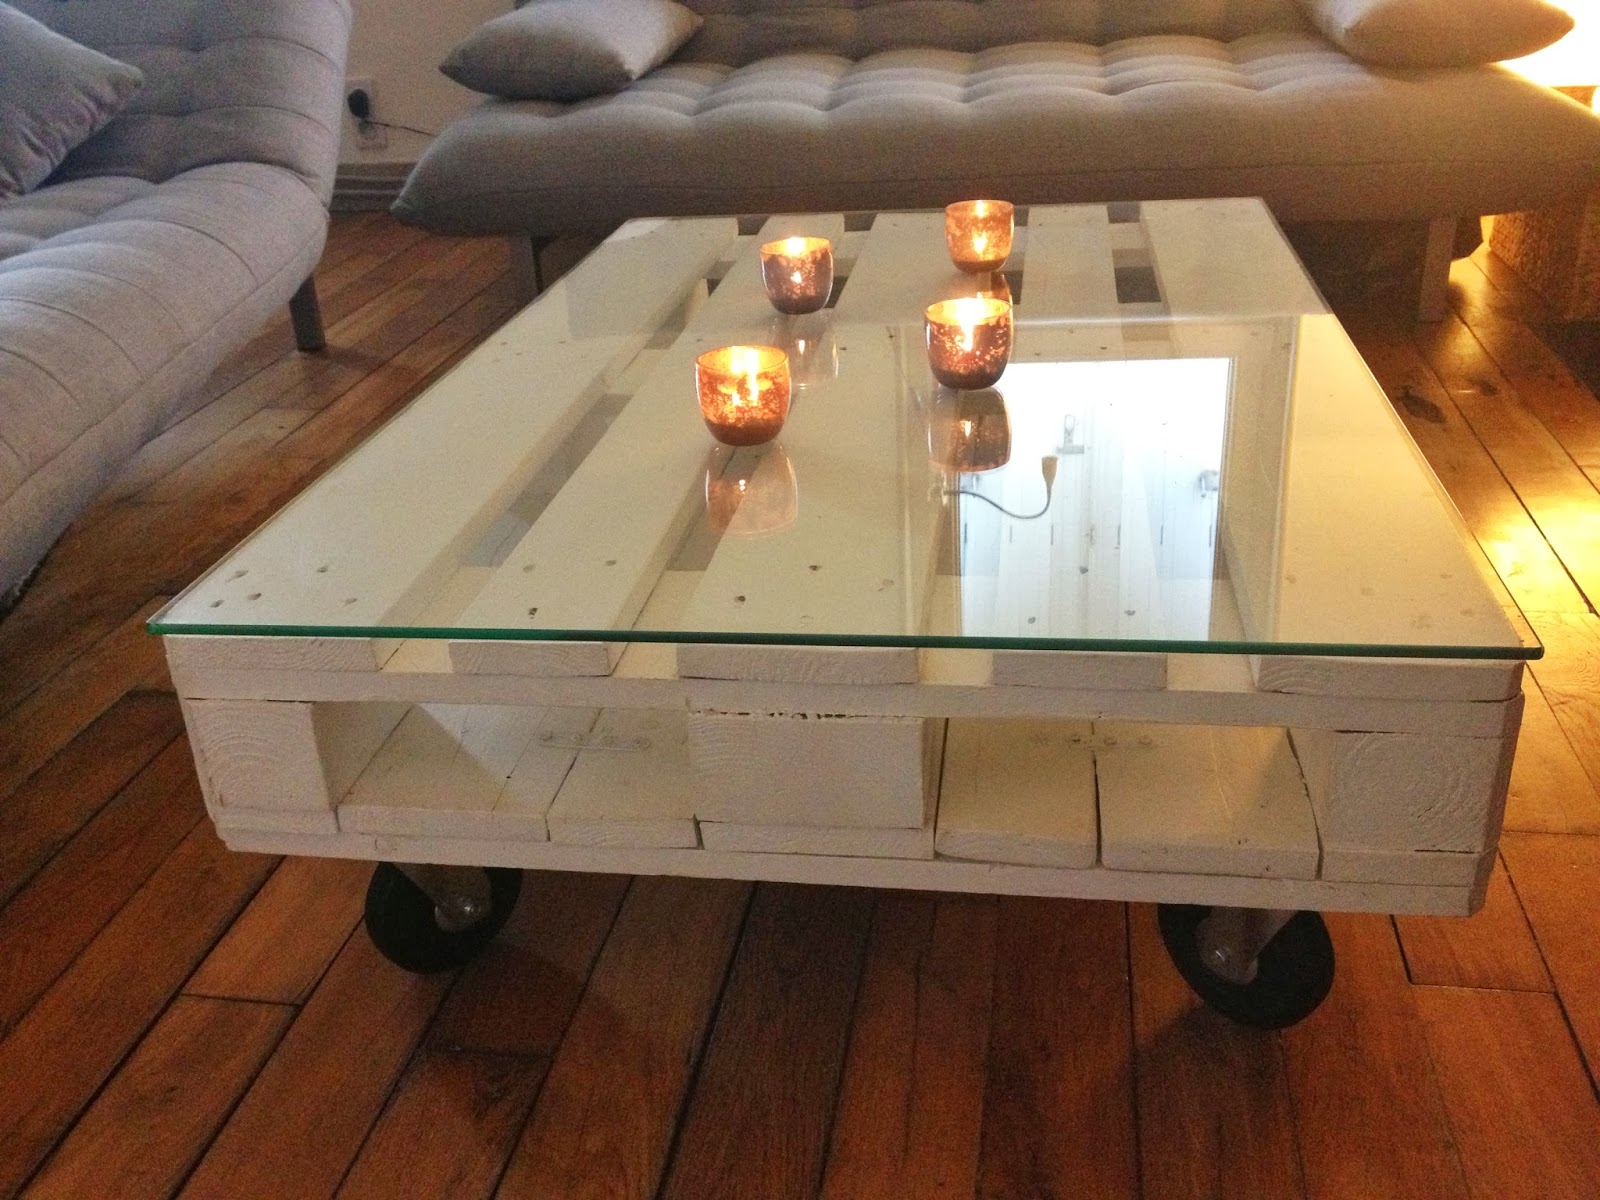 Diy une table basse en palette la clamartoise - Comment faire une table en palette ...